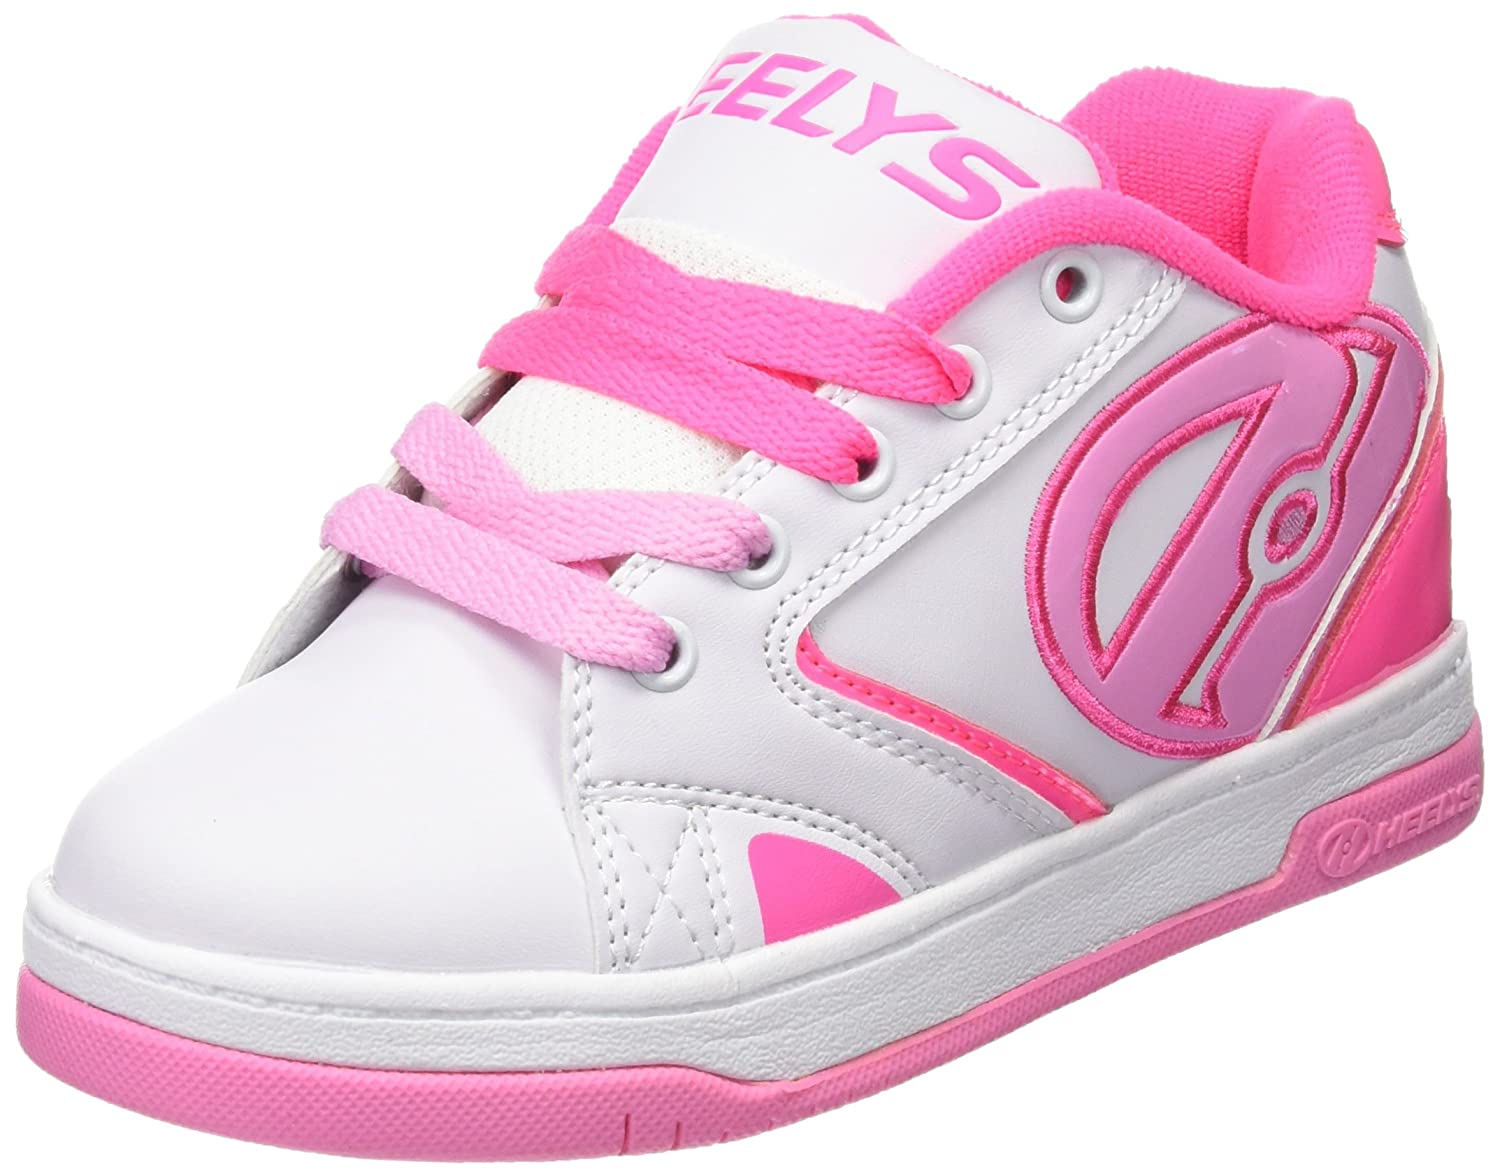 Heelys Kids PROPEL 2.0 Running Shoes Heelys Footwear 450-770512-050